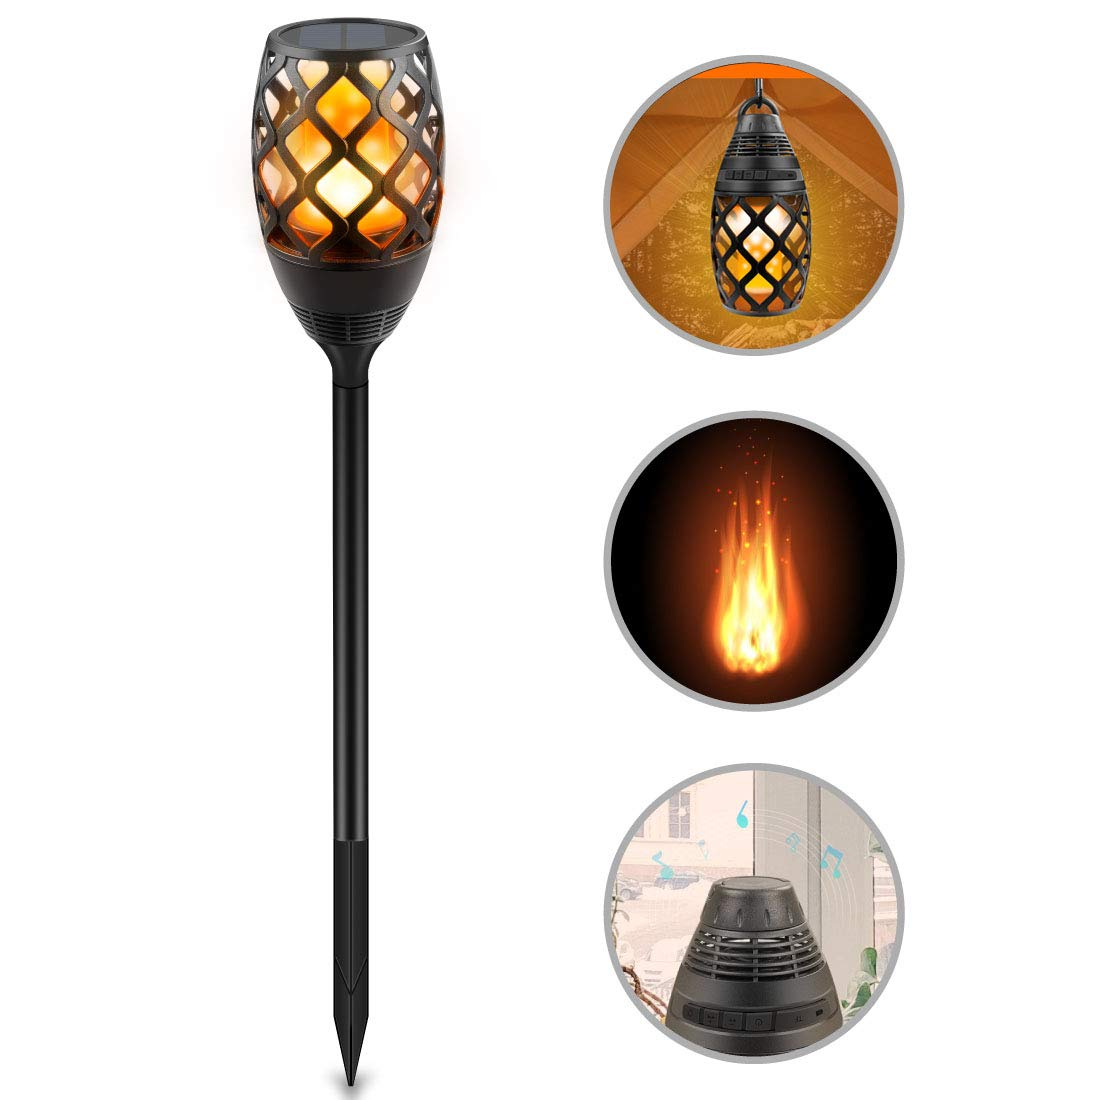 Solar Torch Lights, Soxono Flame Lamp Built-in Portable Bluetooth Speaker Solar LED Flickering Garden Camping Lights Outdoor HD Audio Waterproof Compatible iOS/iPad/Android Samsung